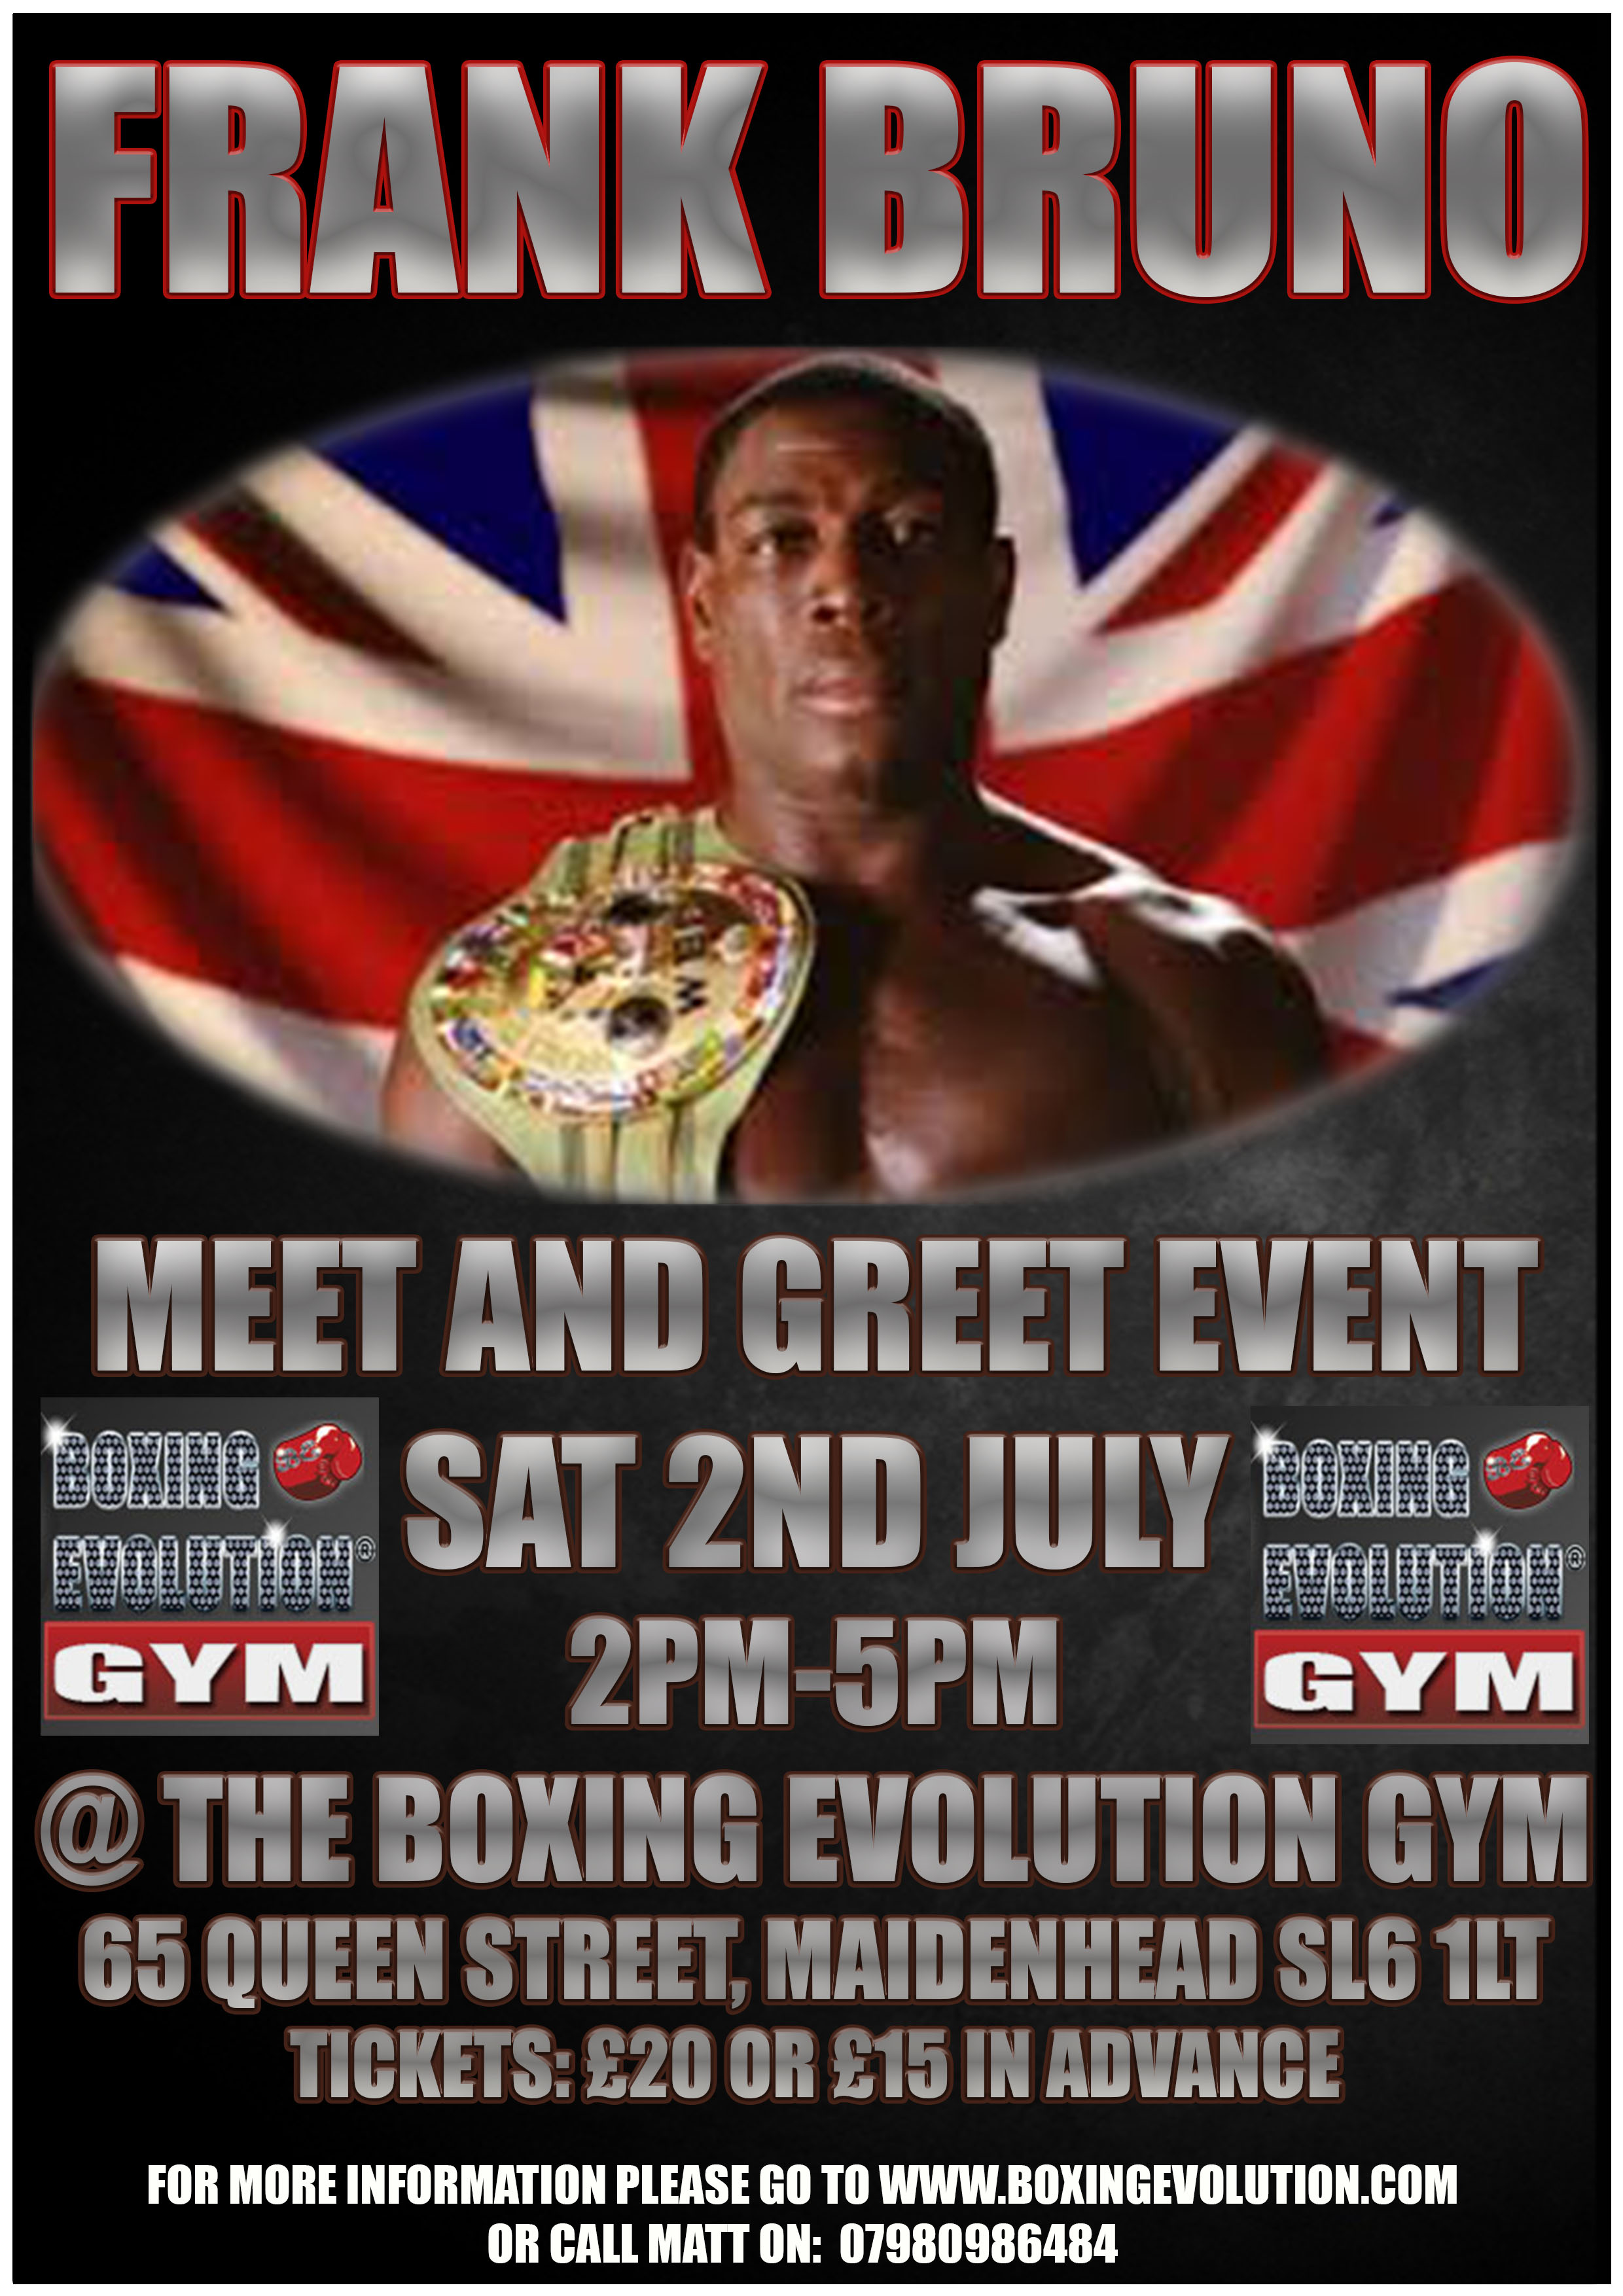 Frank Bruno Meet And Greet Event At The Boxing Evolution Gym